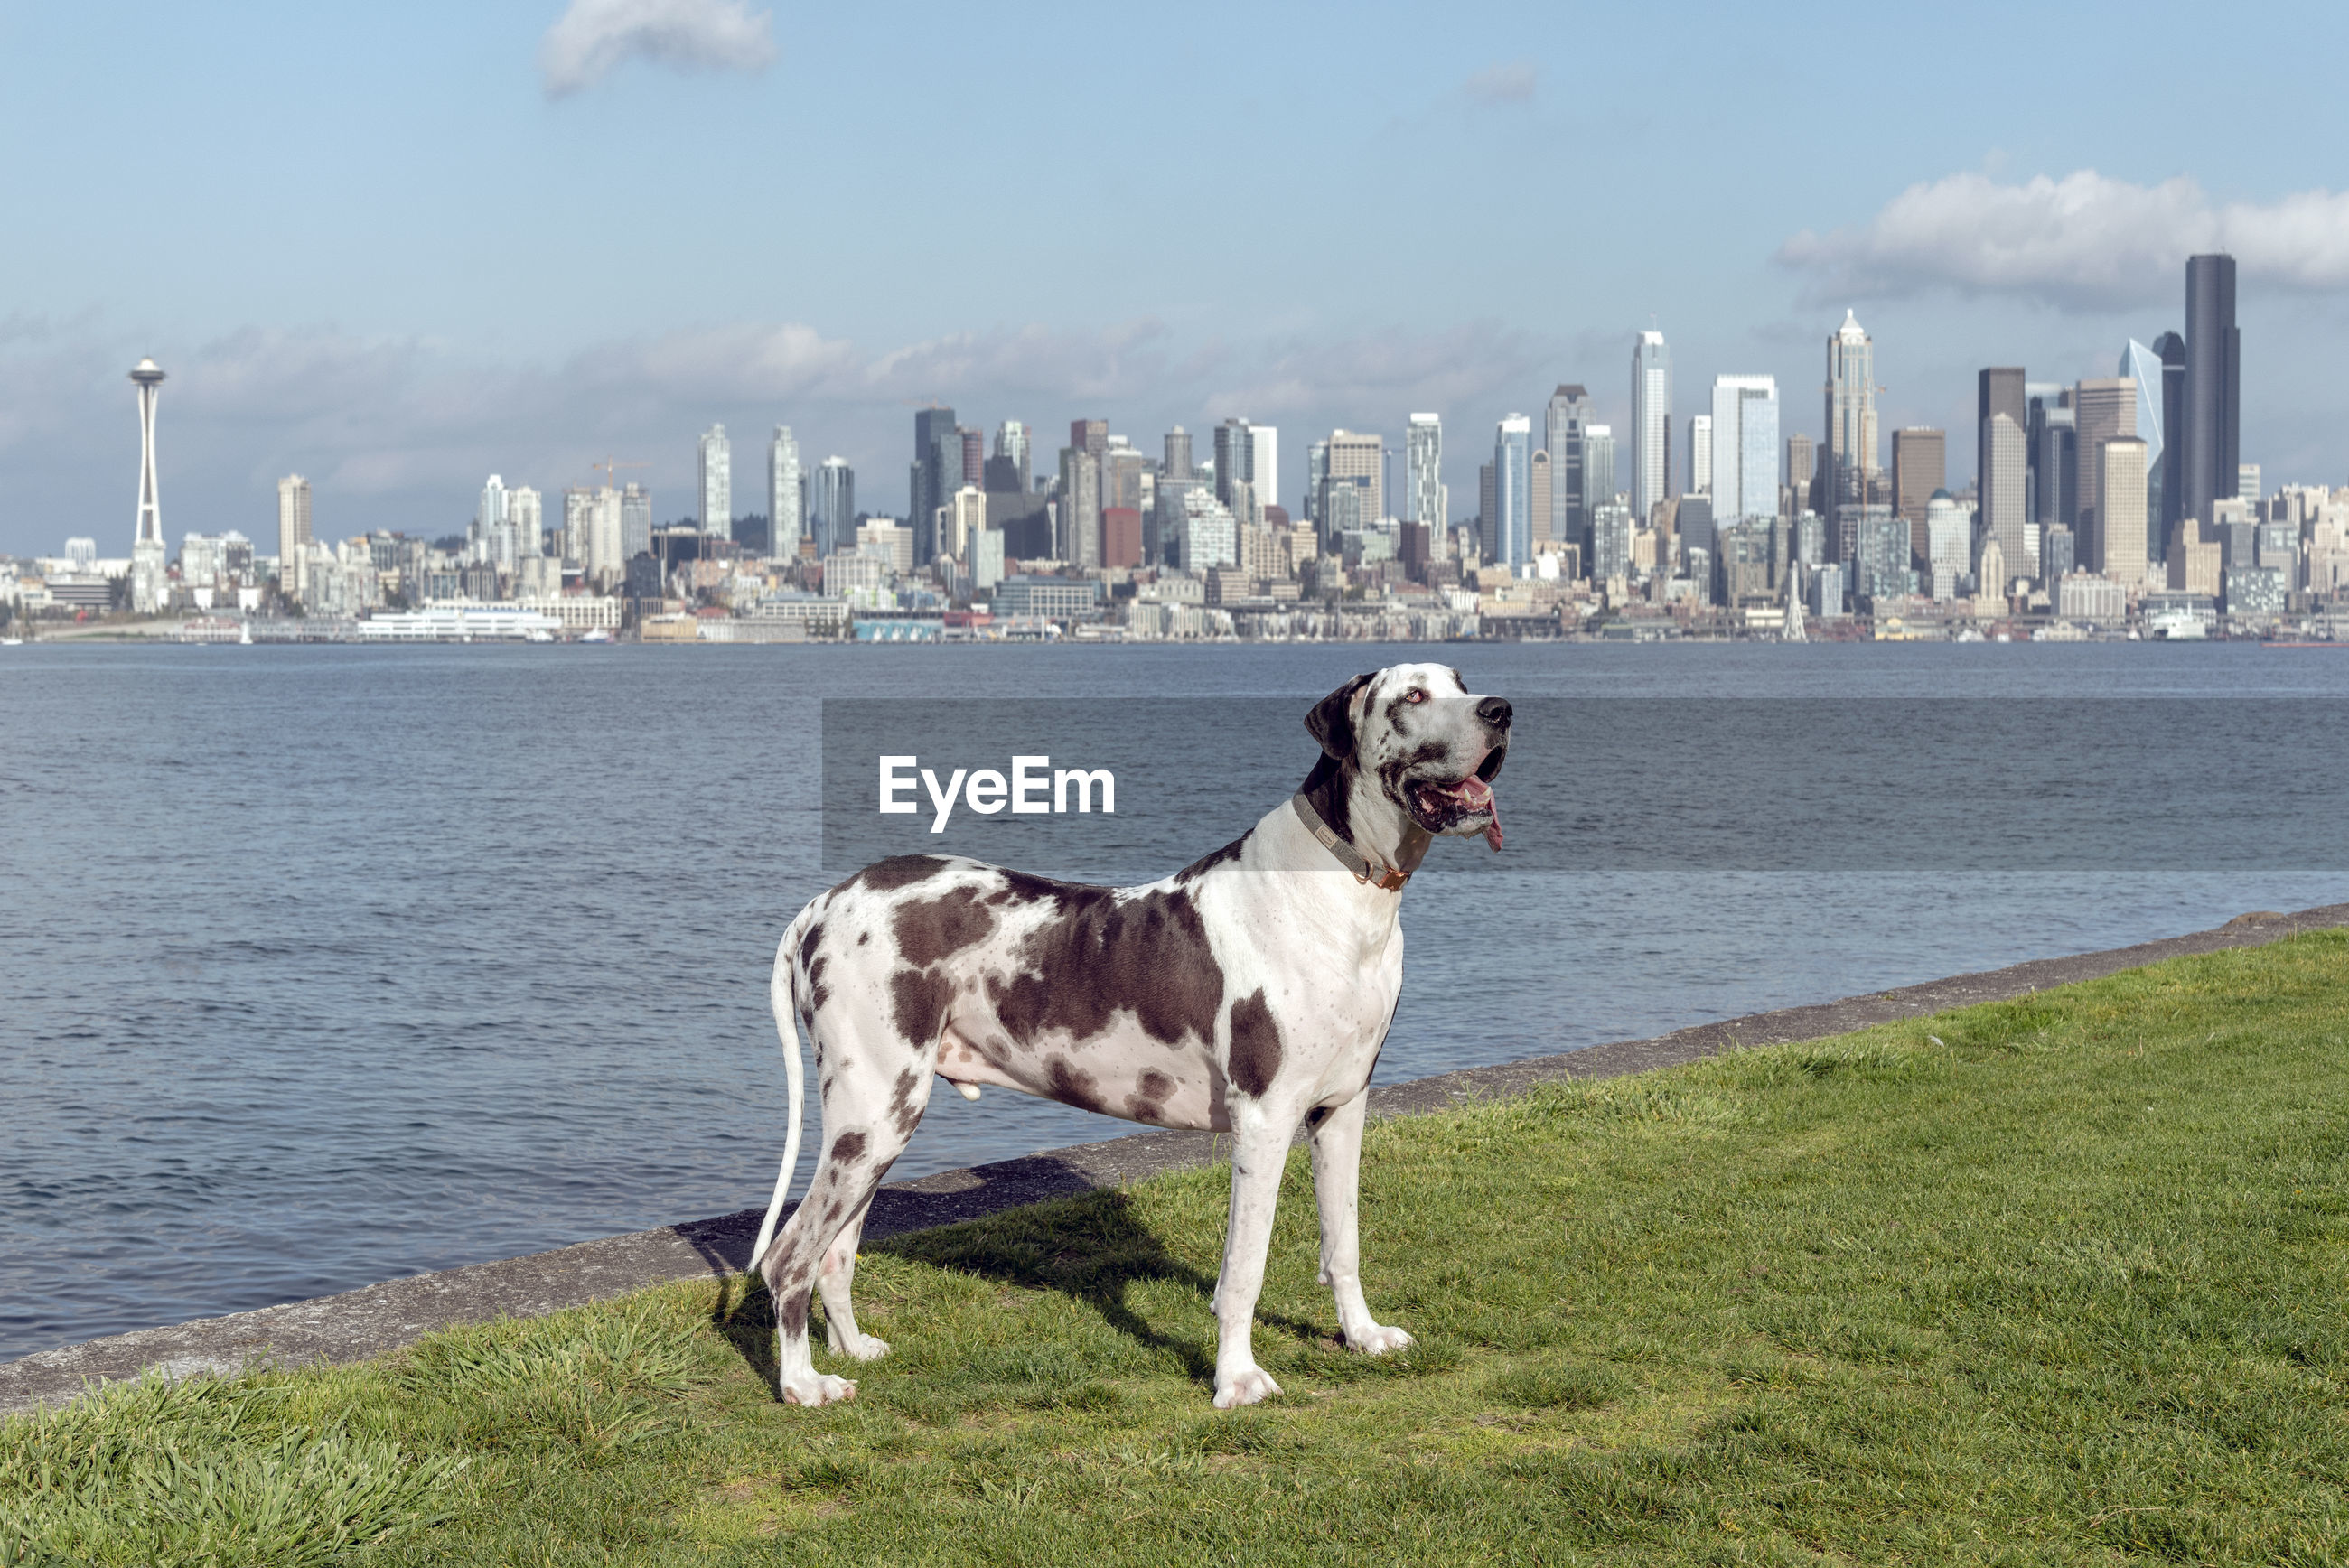 Dog standing on field by river in city against sky